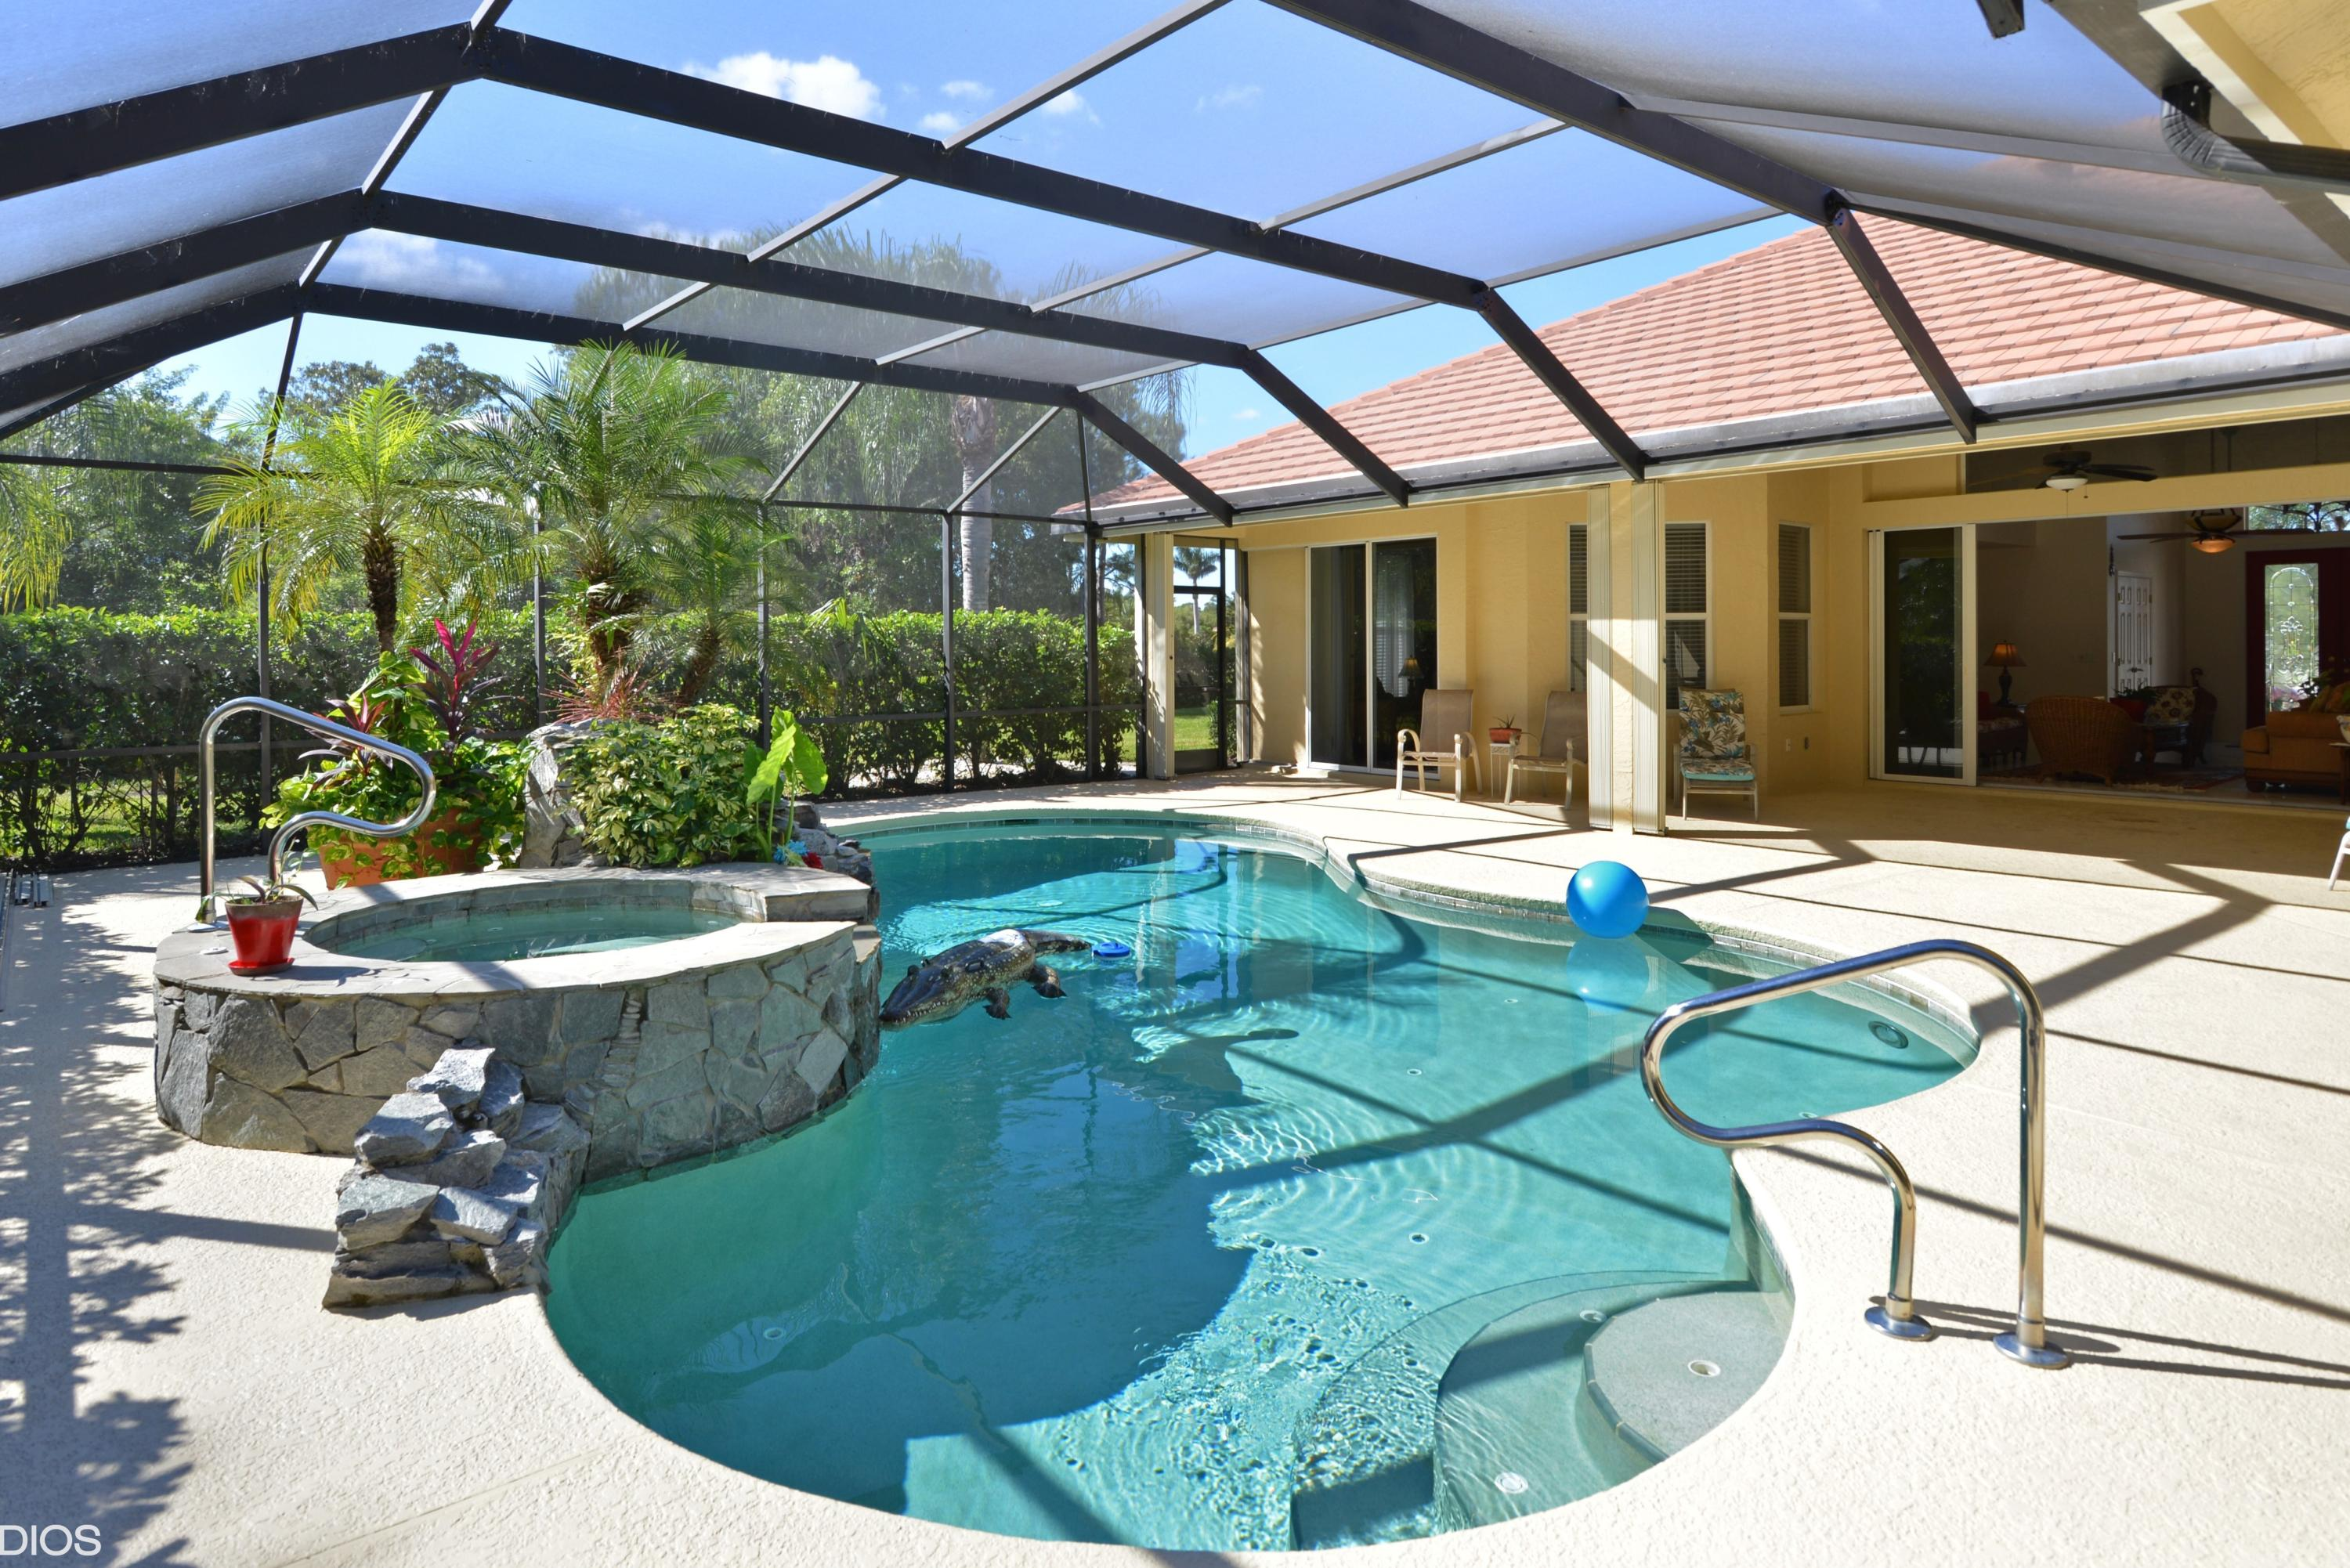 Pool Spa Executive home in PGA Village on lush estate lot. Solidly built 3/3/3 CBS, heated pool/spa,custom open floor plan designed to enjoy the tropical covered screened patio area, pocket sliding doors, newly installed granite kitchen countertops with subway tile backsplash, cabana bath, circular drive and much more. New flat tile roof 2017, exterior painted, home is well maintained and maintenance free. HOA includes the Island Club at PGA Village with  pool, exercise room, tennis, basketball, picnic area and social activities. PGA Village has 3 Champion Golf courses open to the public and several different memberships are available plus the private Legacy Golf Course.(Golf membership is not mandatory.)  Only minutes from St Lucie West where you can find many restaurants, shopping, movies, bowling, medical facilities. Home of the NY Mets Spring Training. The Treasure Coast has amazing waterways for boating, fishing & beaches and located only 45 minutes to PBI.